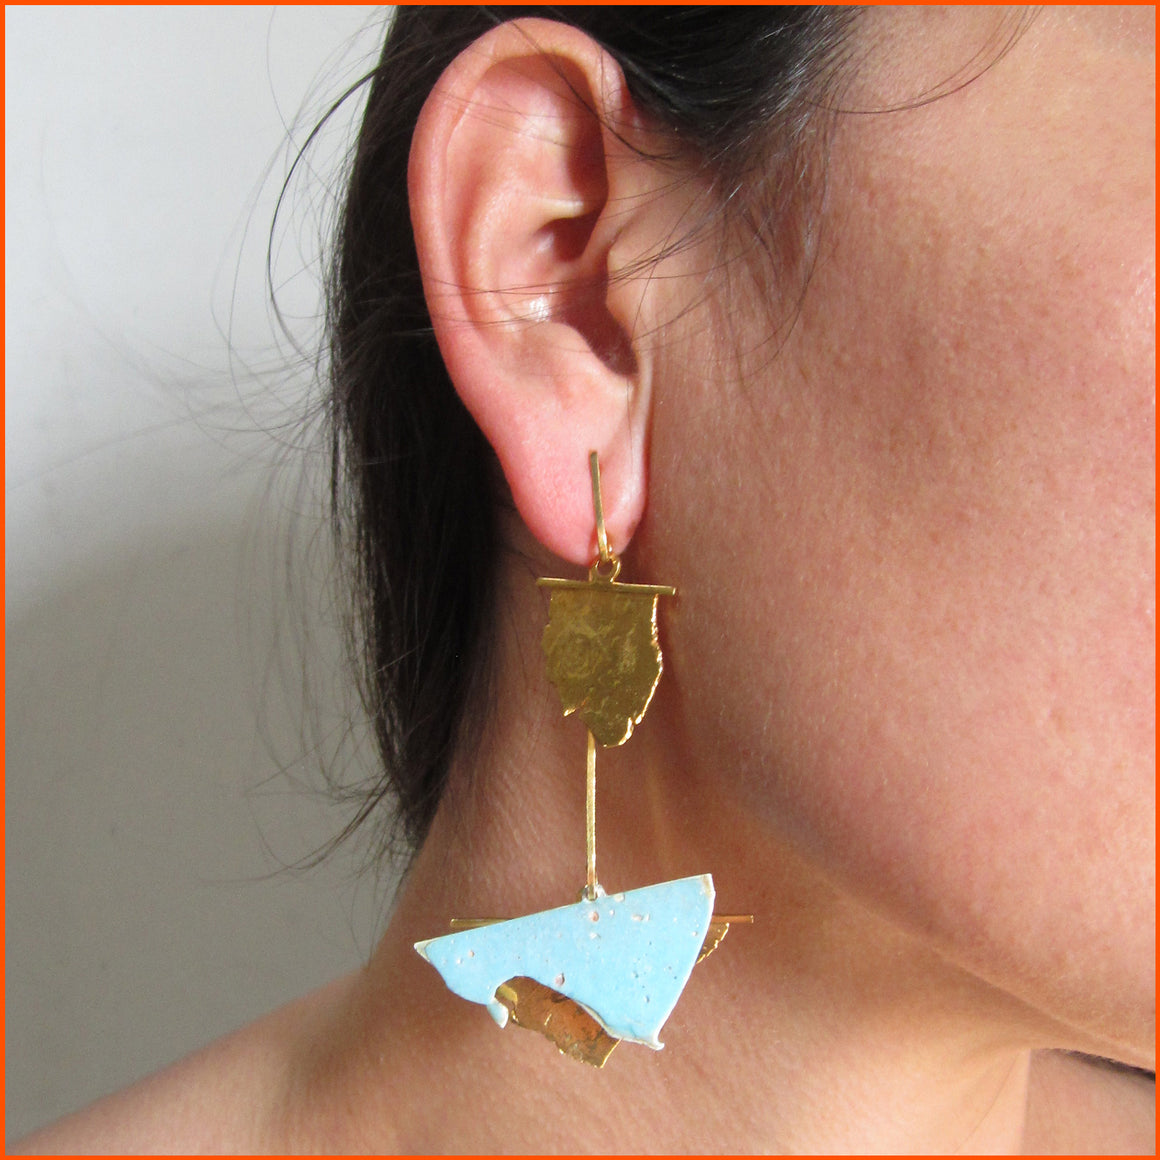 18K gold plated and enameled fine silver earrings by Seth Papac